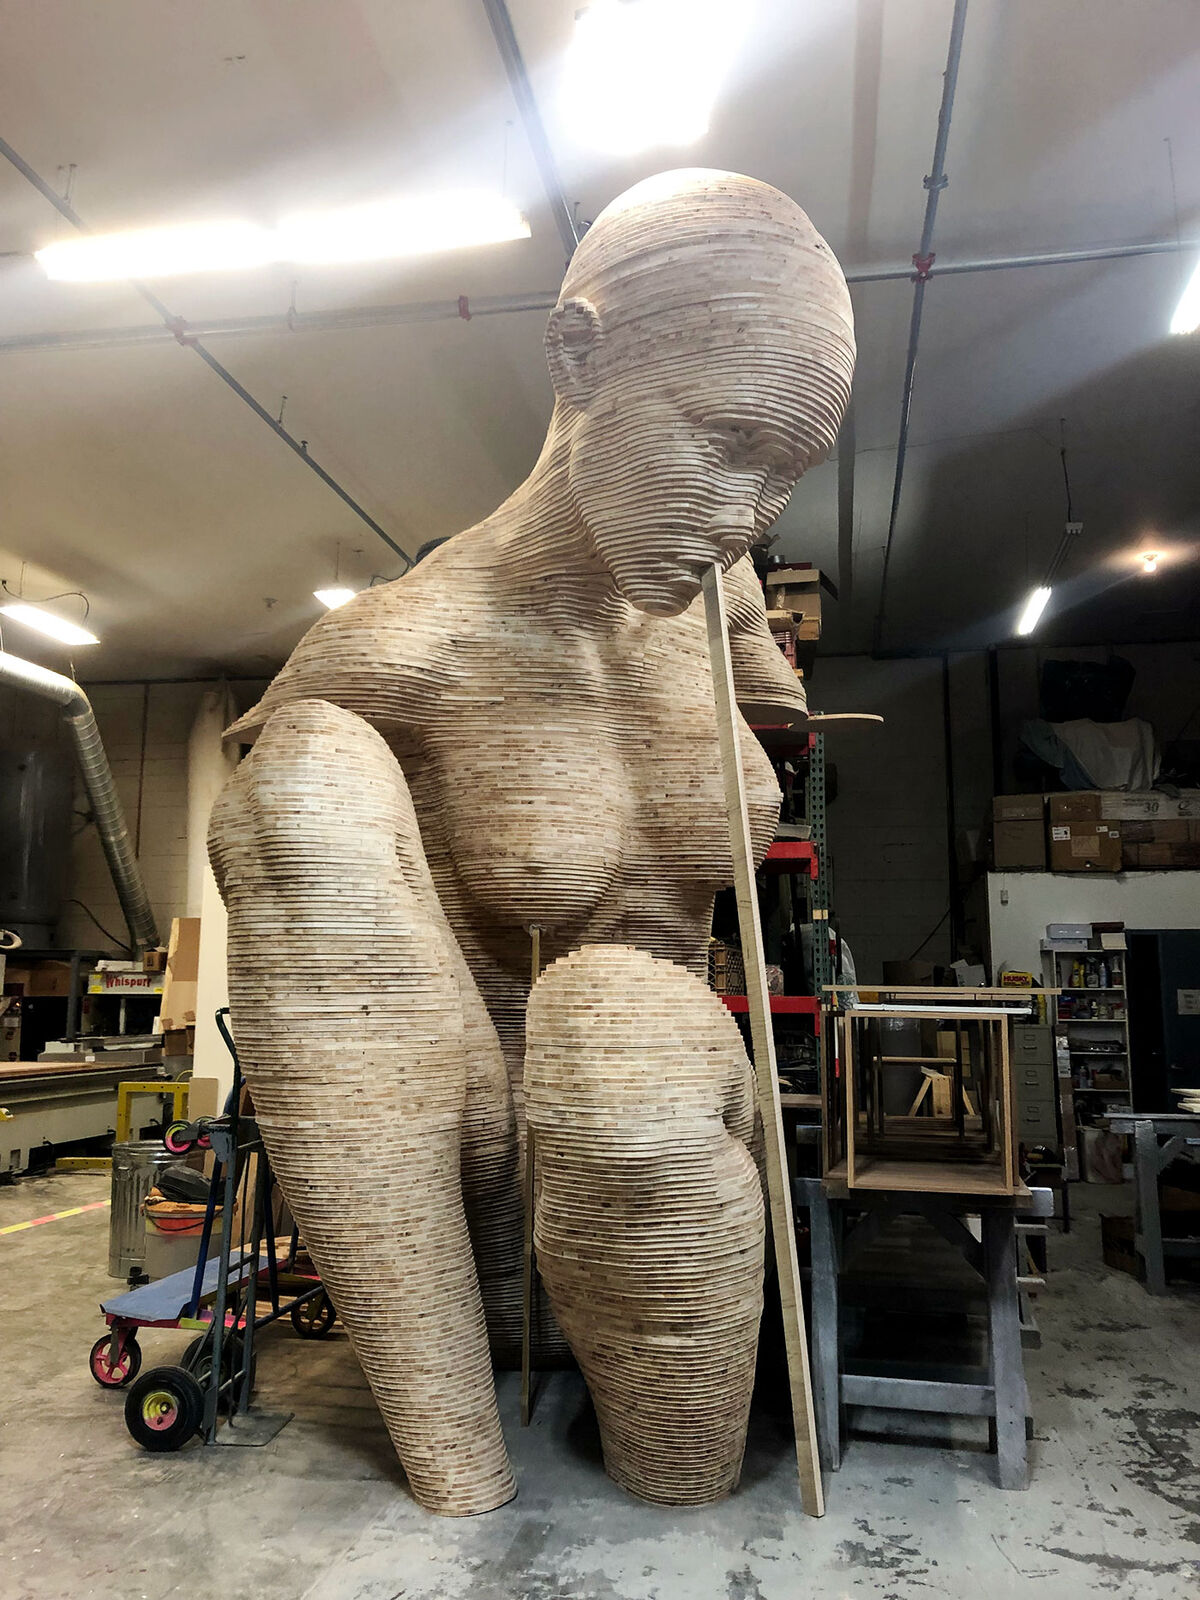 In-progress view of Chris Carnbuci's new sculpture Mariposita , 2019, at a woodworking shop in Suffern, New York. Courtesy of the artist.